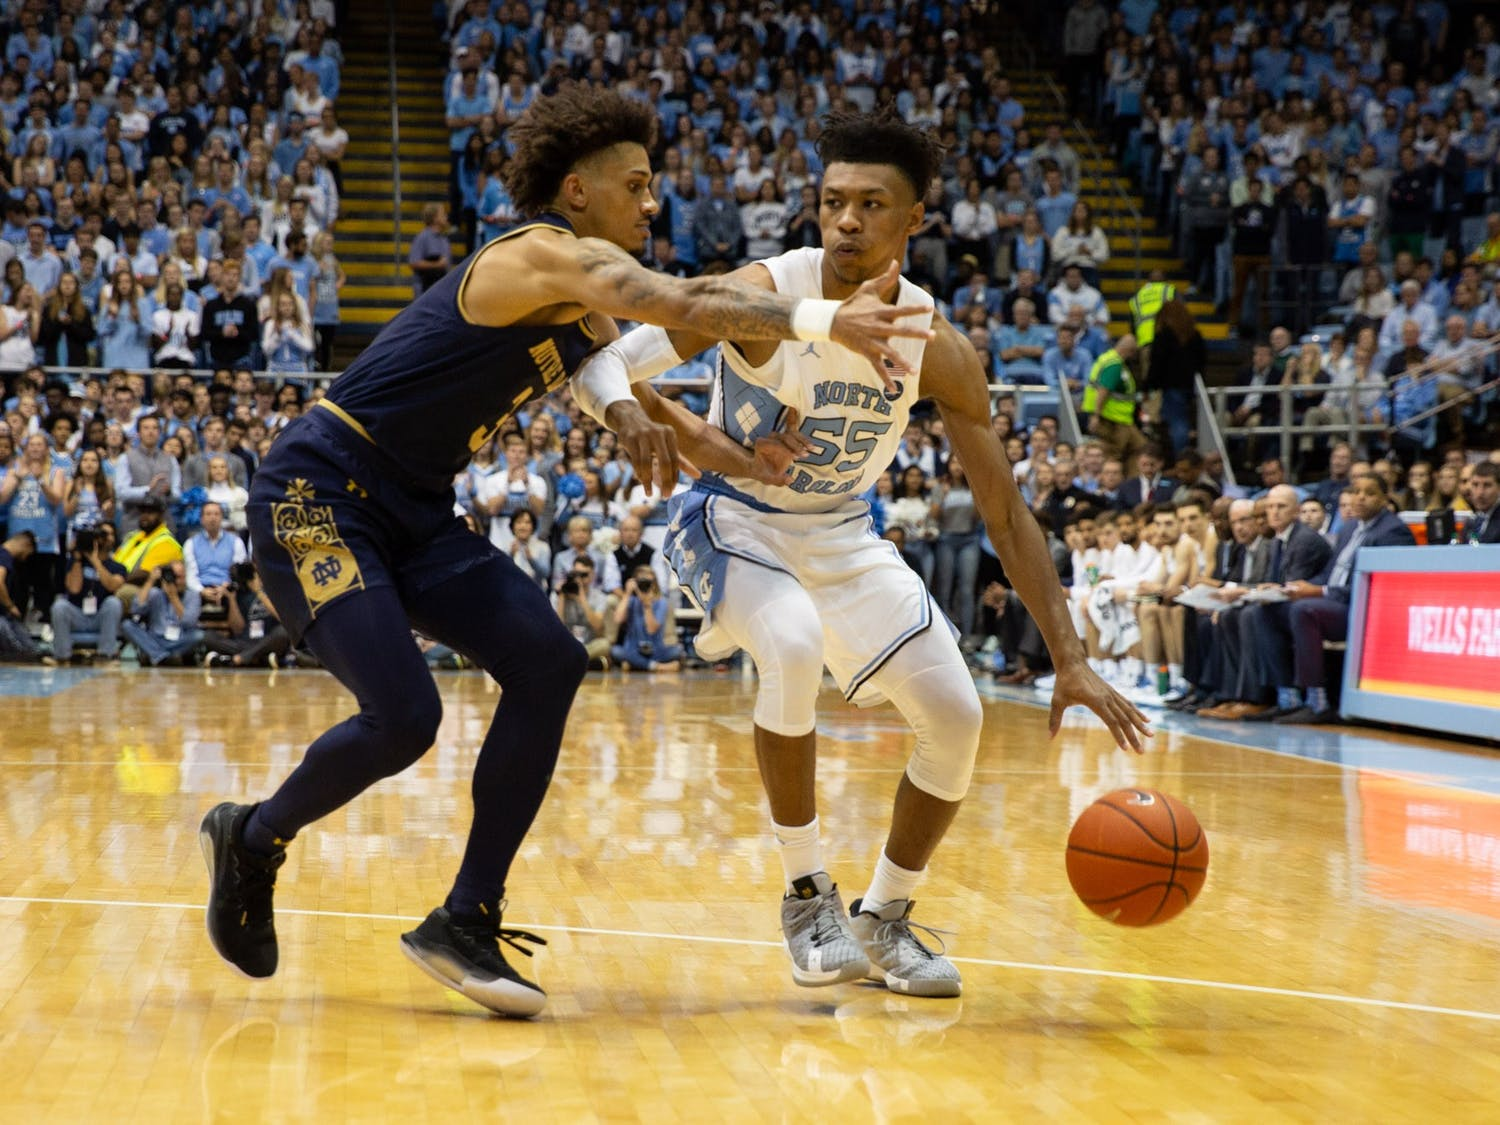 UNC guard Christian Keeling (55) dribbles the ball in the game against Notre Dame on Wednesday, Nov. 6th, 2019 at the Dean E. Smith Center. UNC won the game 76-65.